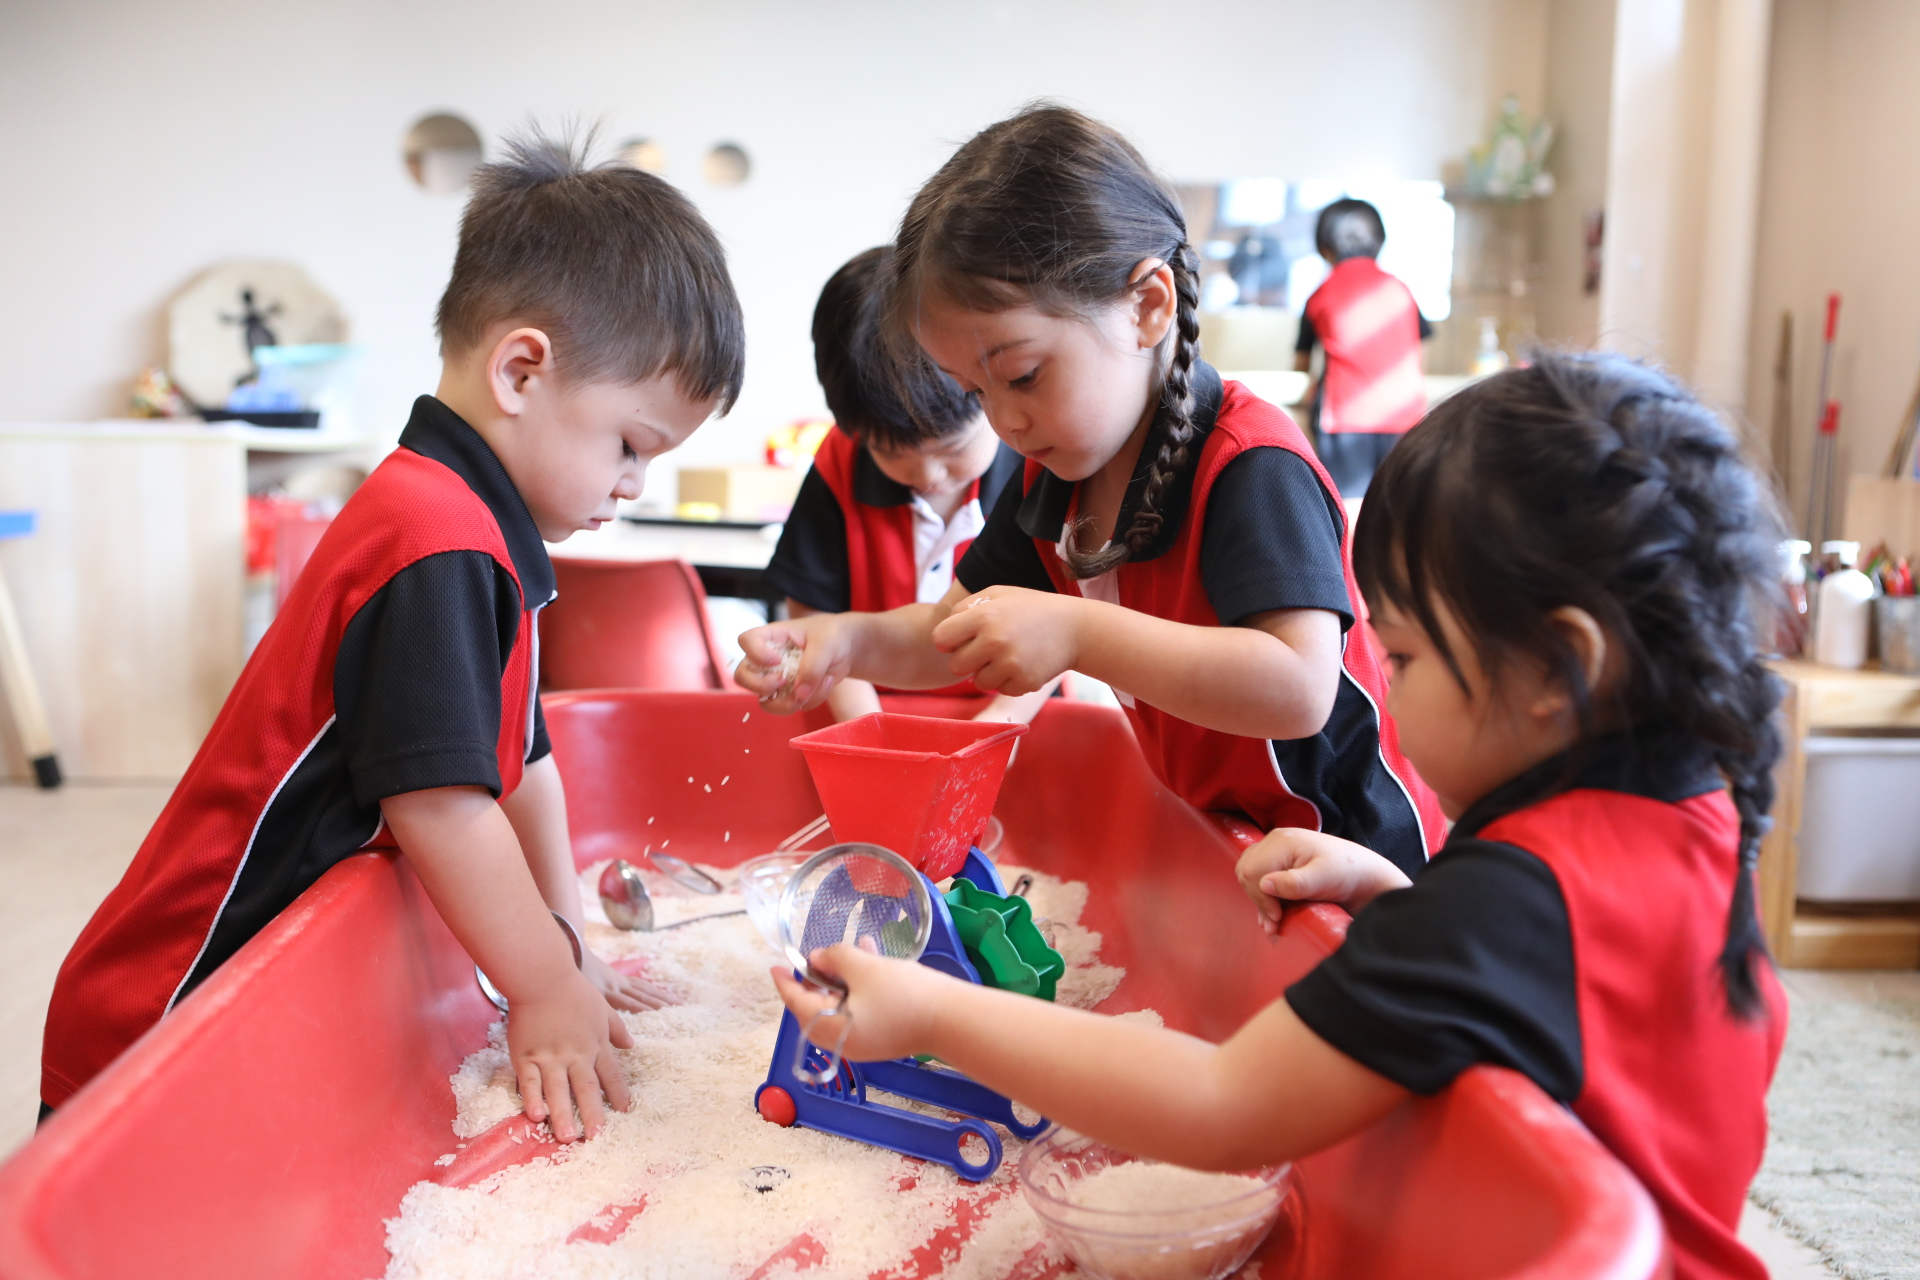 CIS Students learning through play